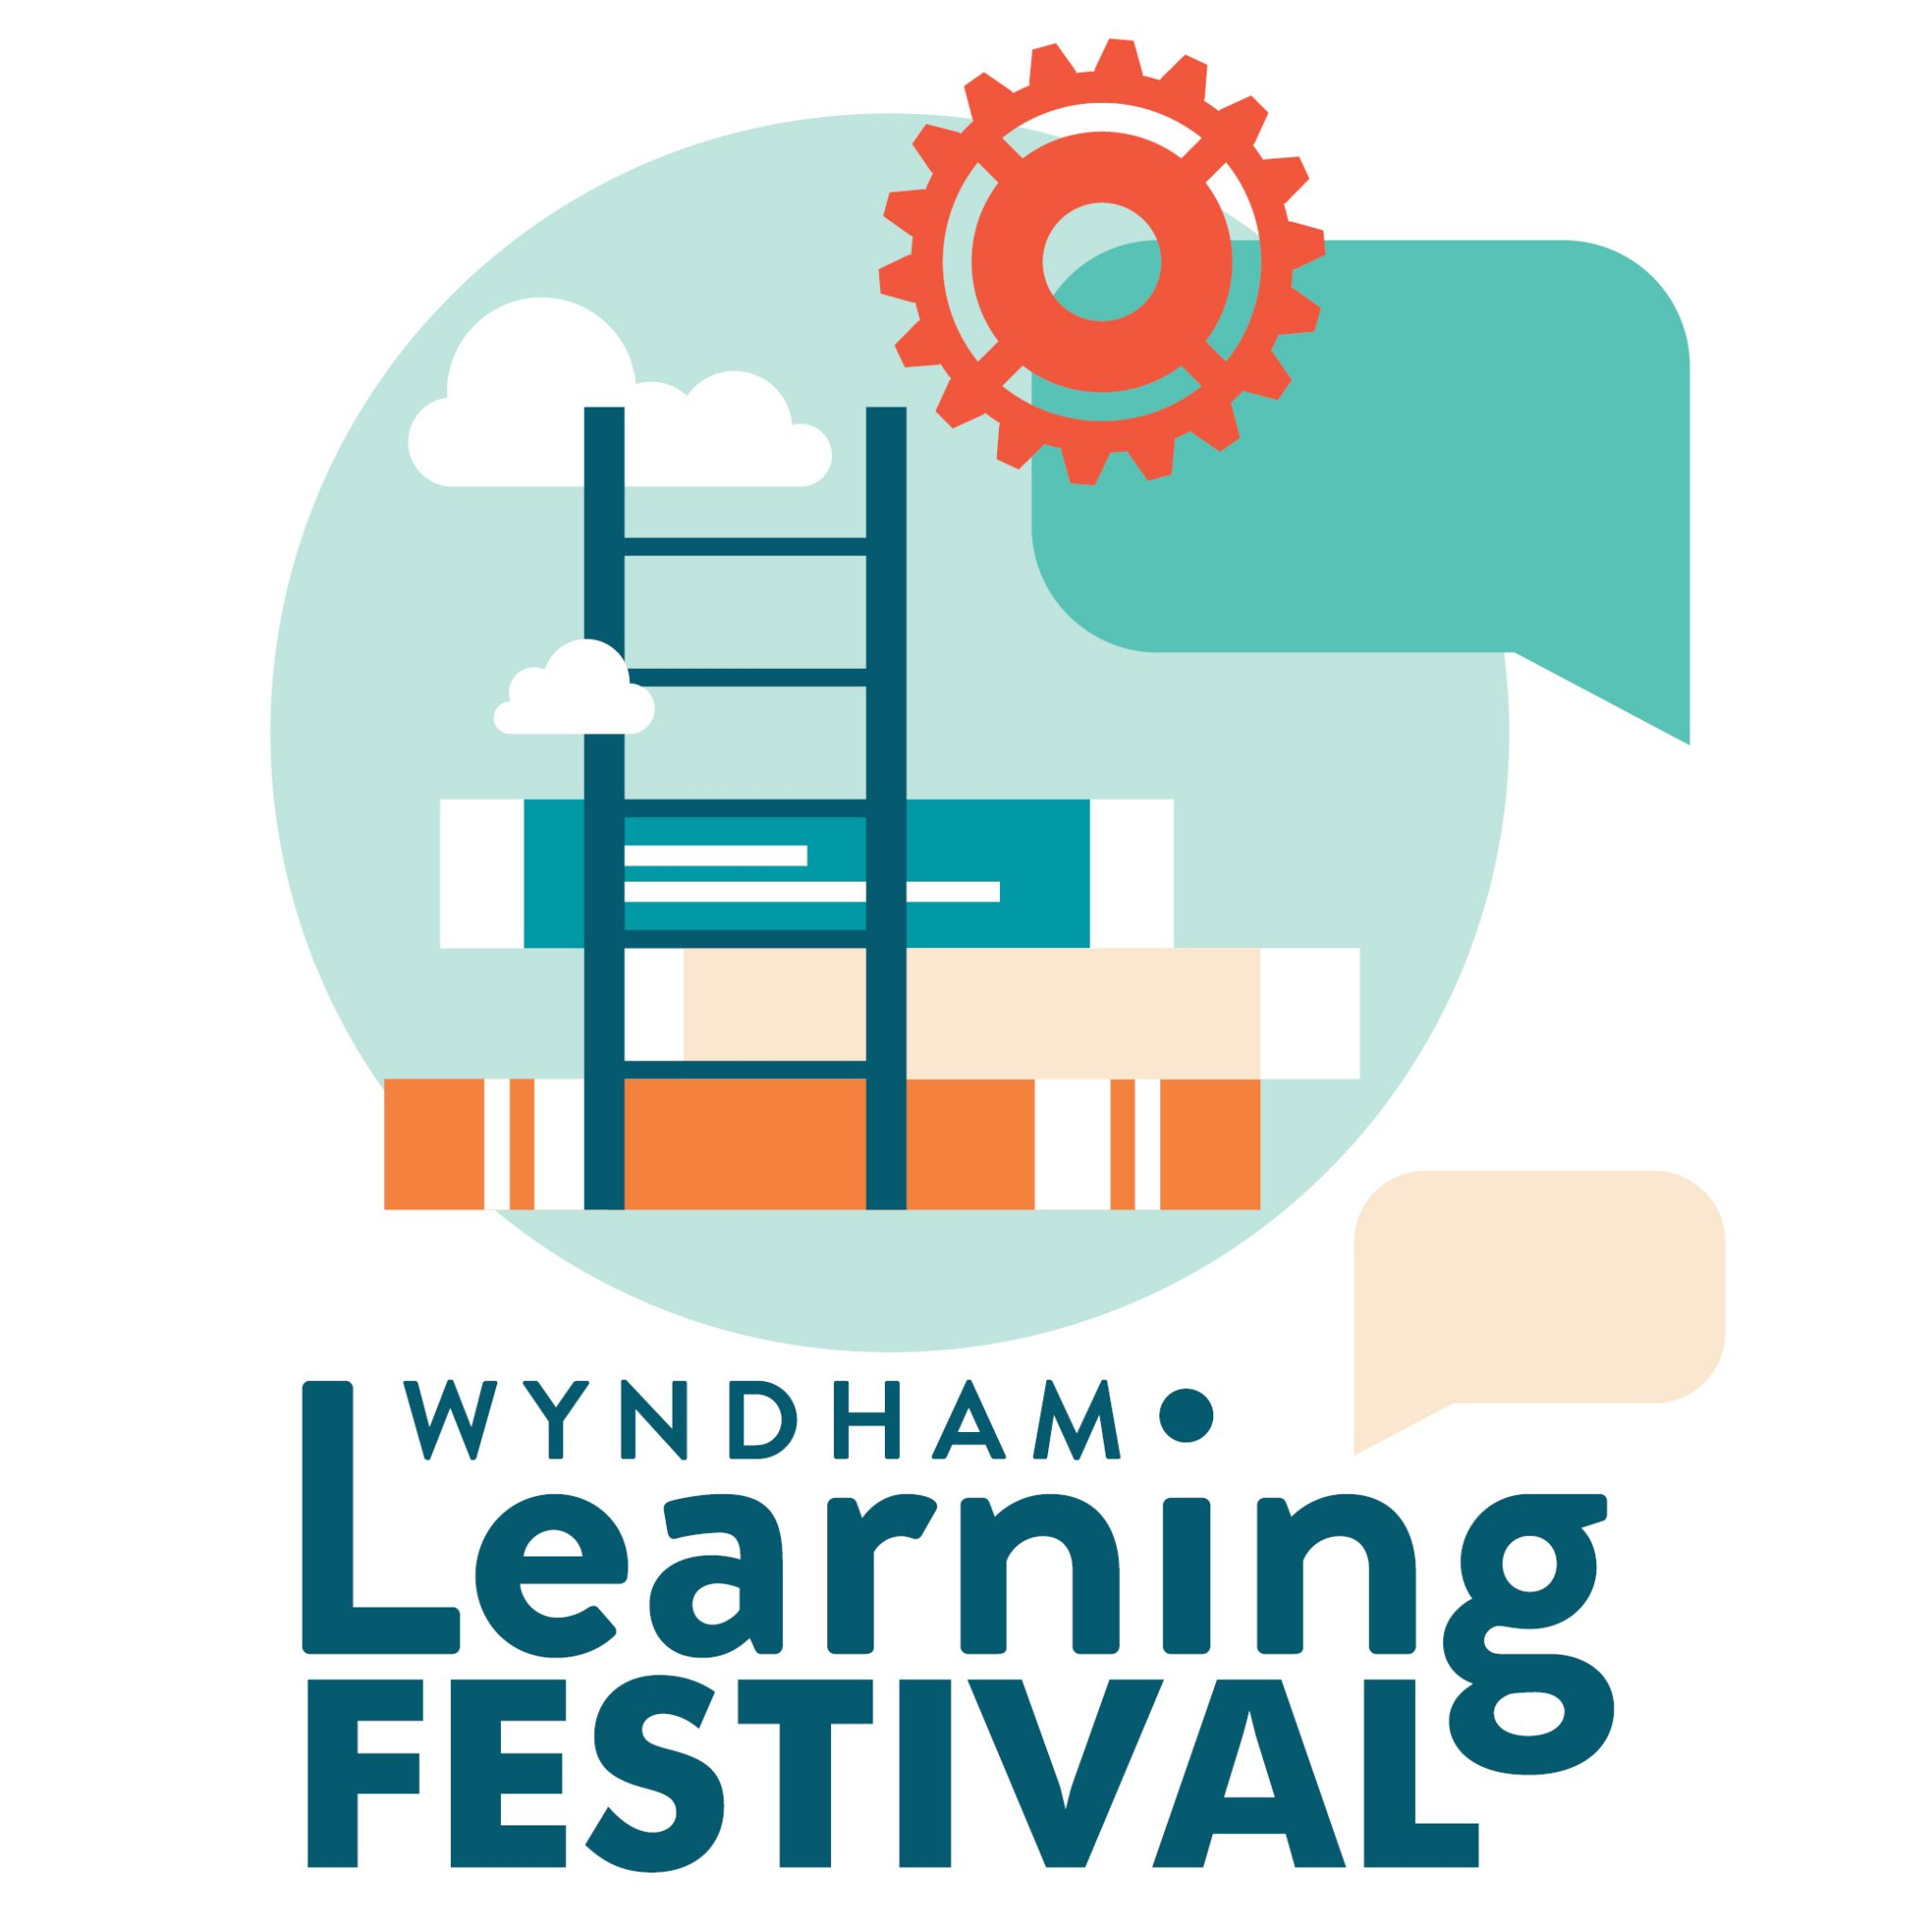 Wyndham Learning Festival